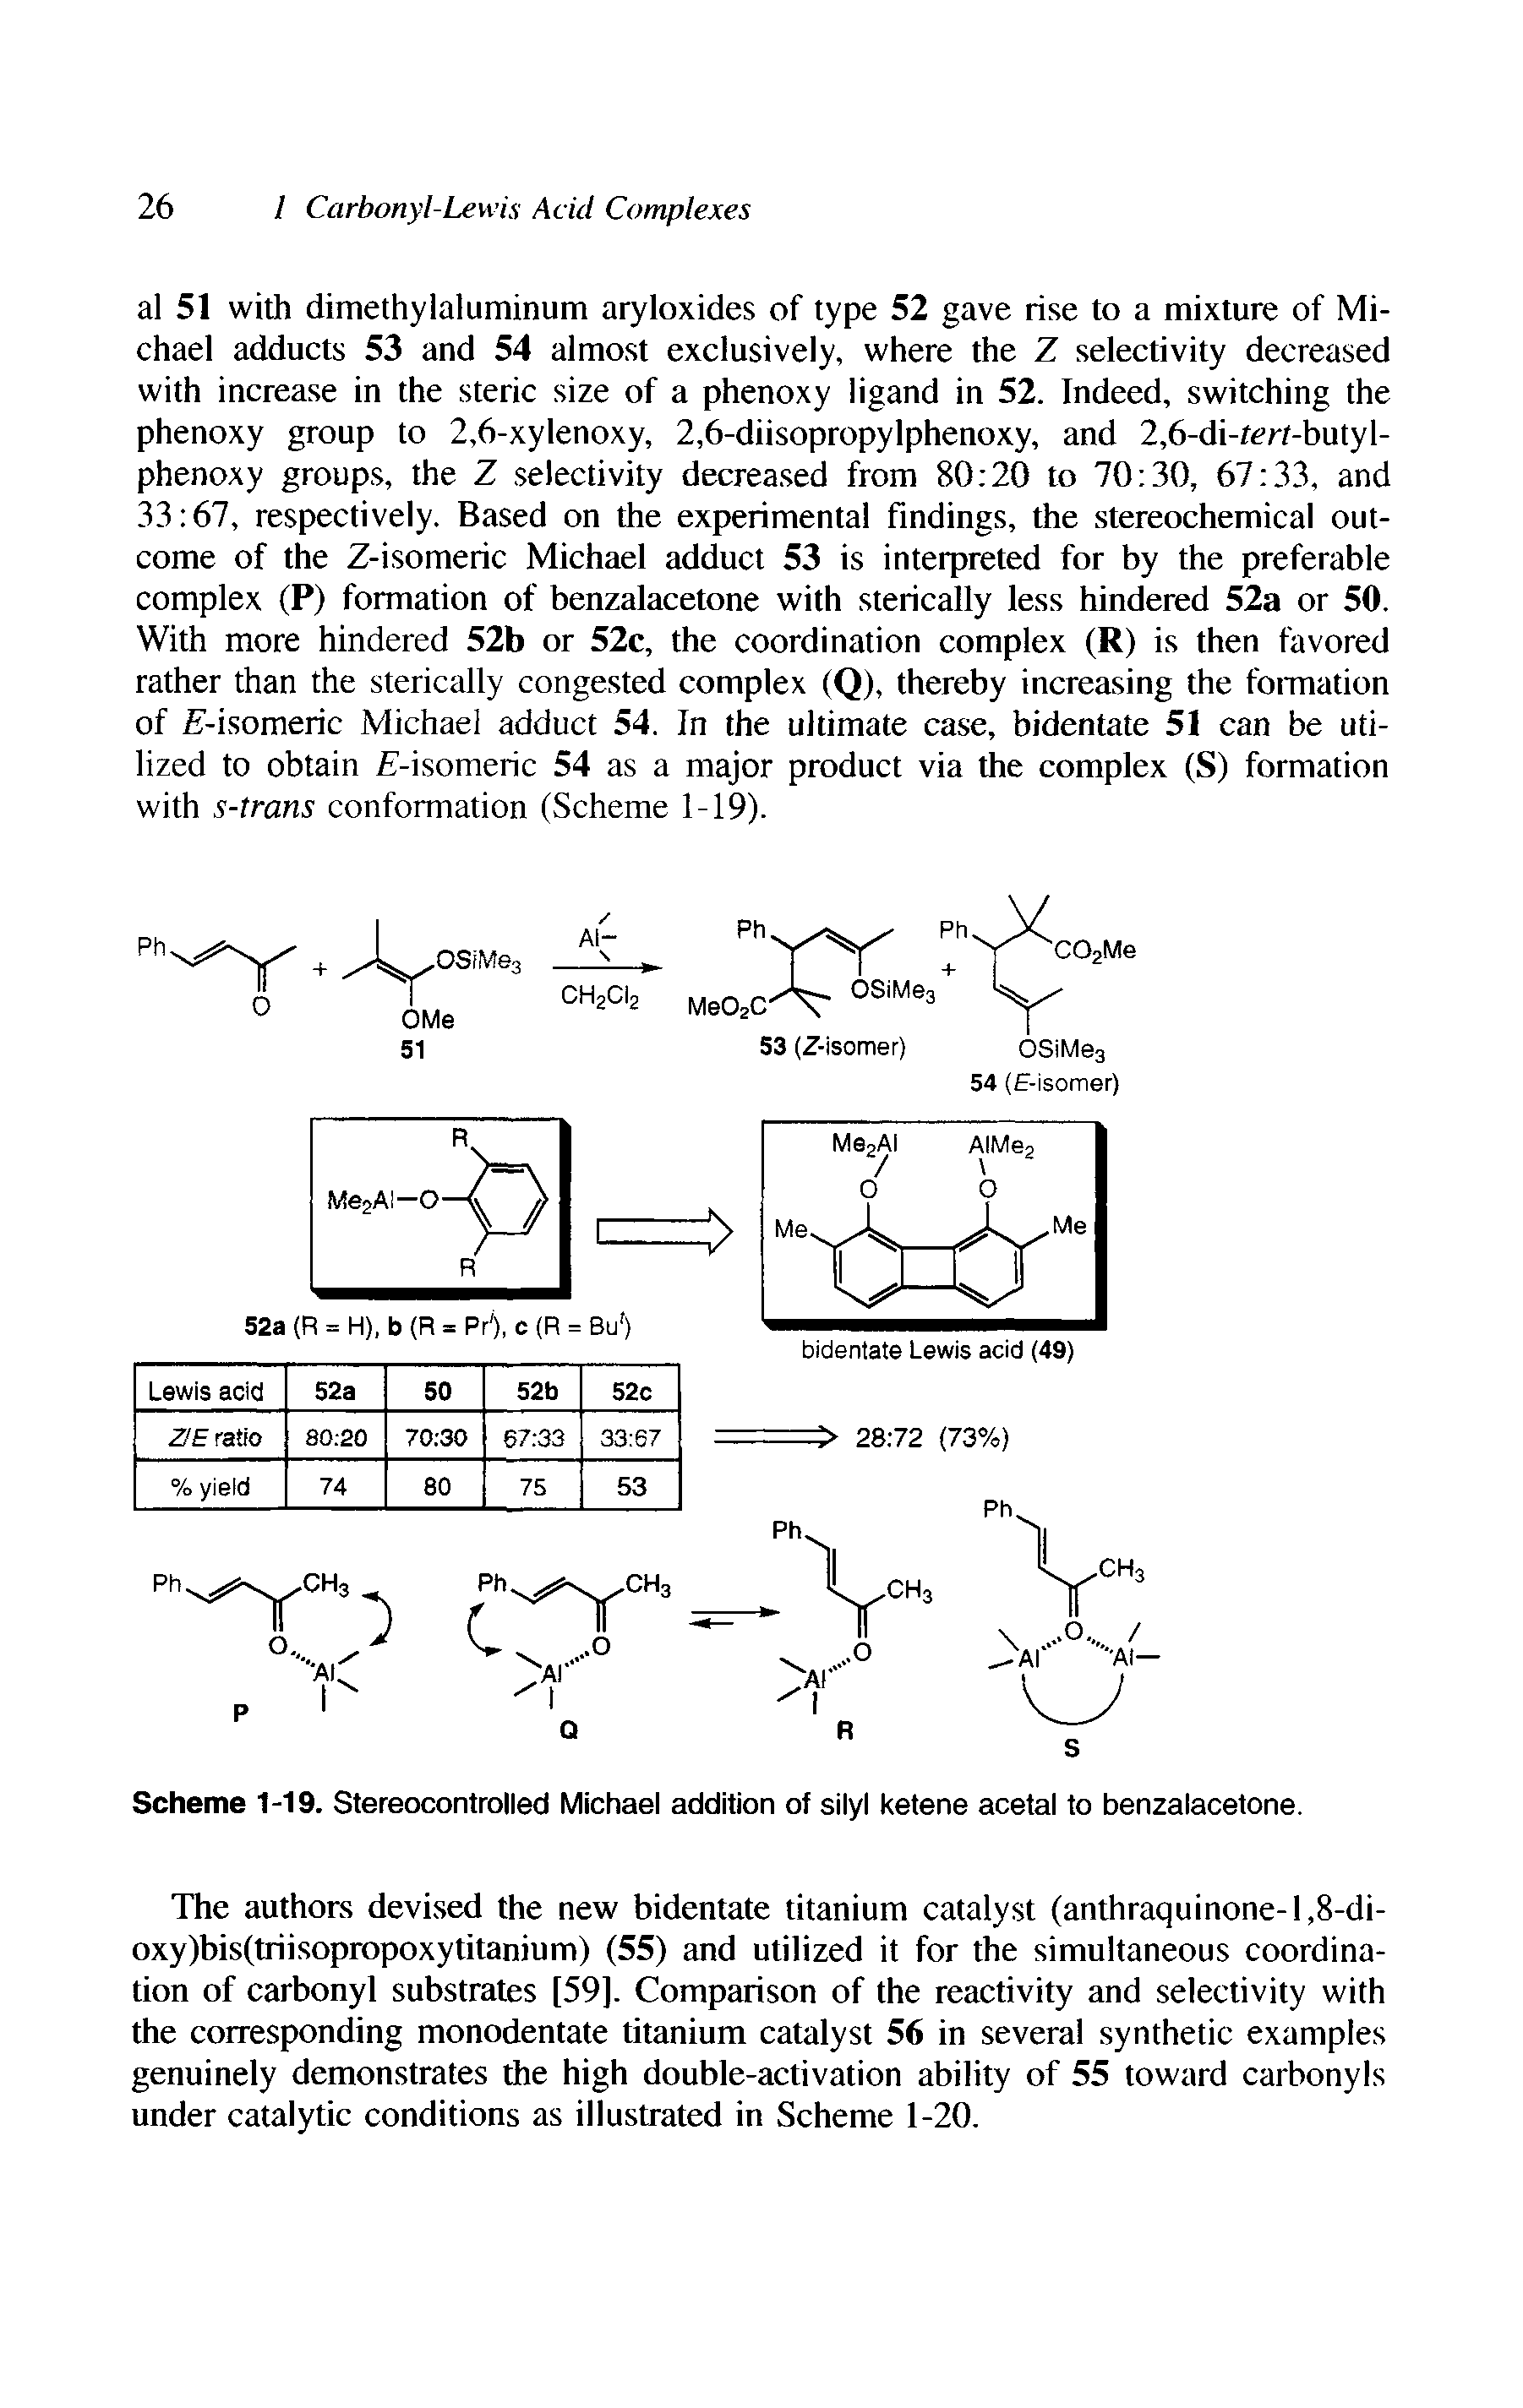 "Scheme 1-19. Stereocontrolled <a href=""/info/michael_addition"">Michael addition</a> of <a href=""/info/silyl_ketene_acetals"">silyl ketene acetal</a> to benzalacetone."